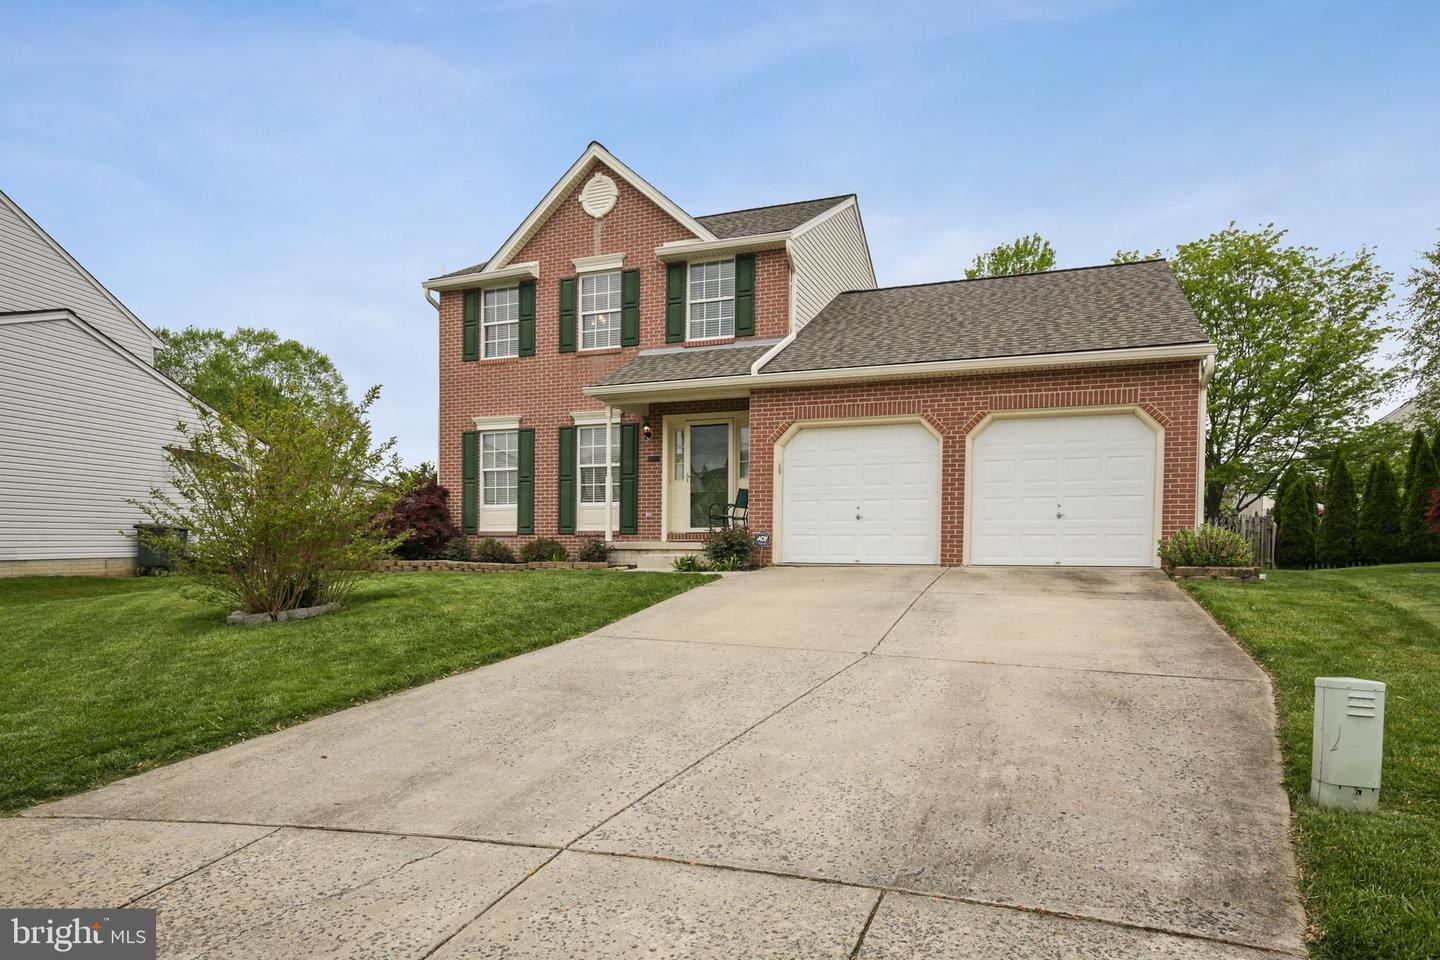 2314 HOWLAND CT, Forest Hill, MD 21050 - MLS#: MDHR259308